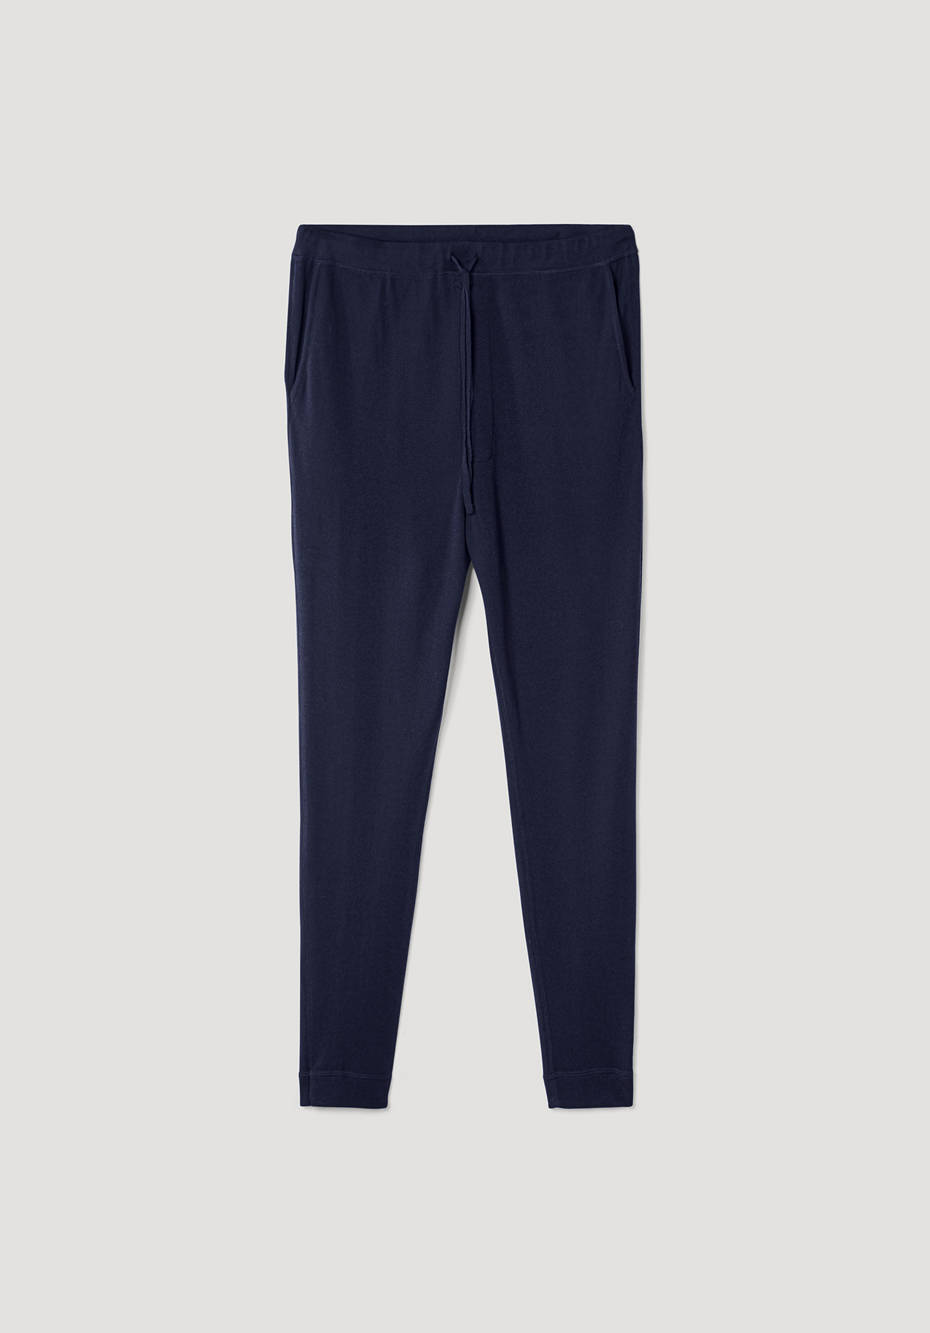 Knitted pants made from pure organic merino wool